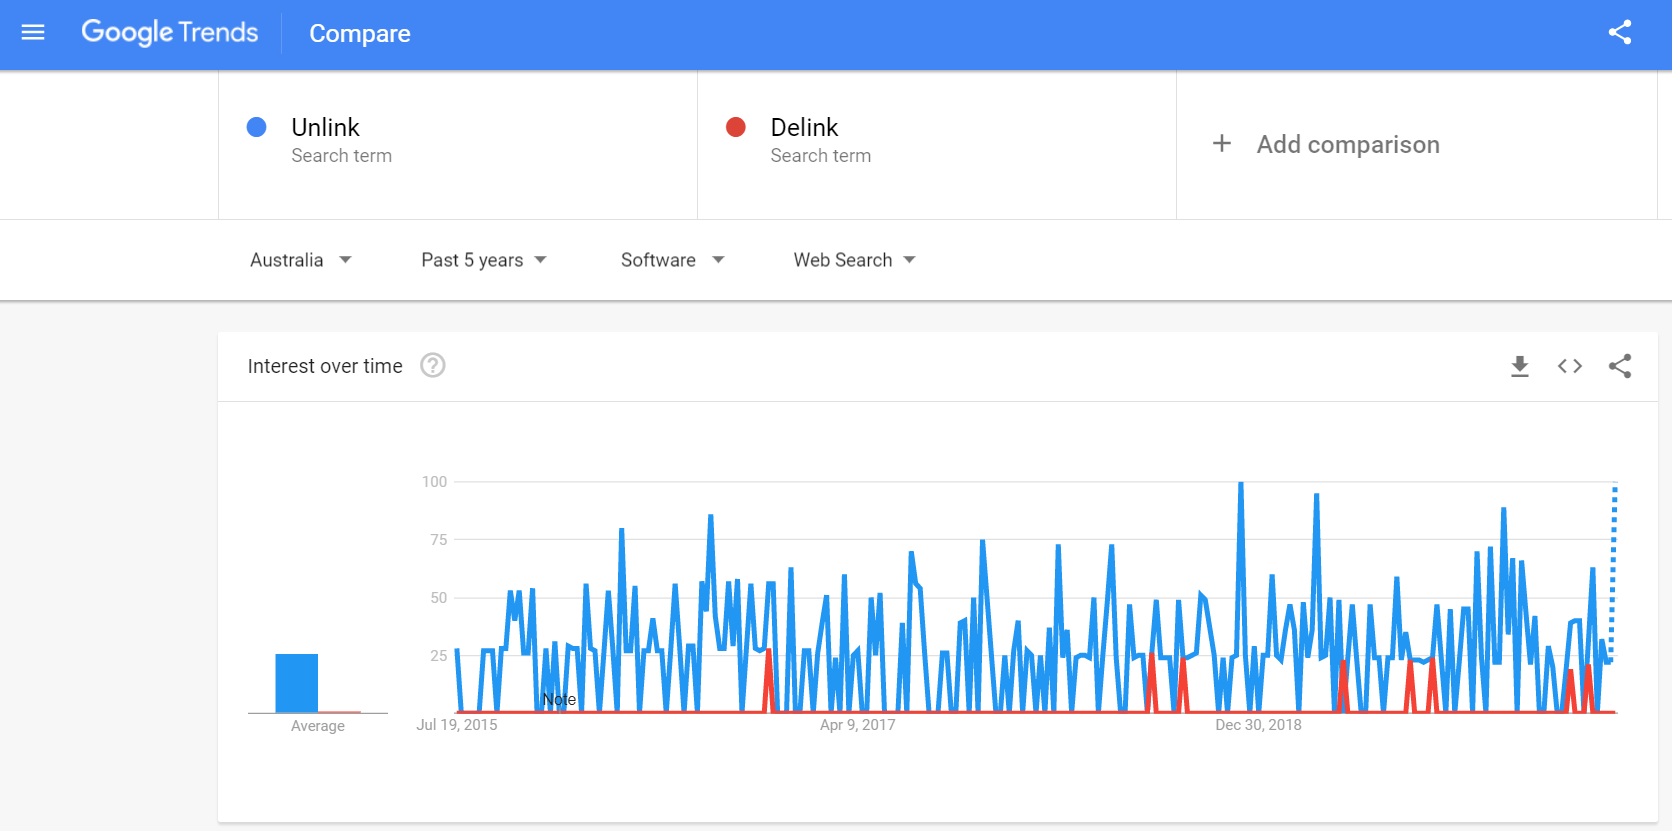 A screenshot of Google Trends, comparing the usage of Unlink vs Delink over time.